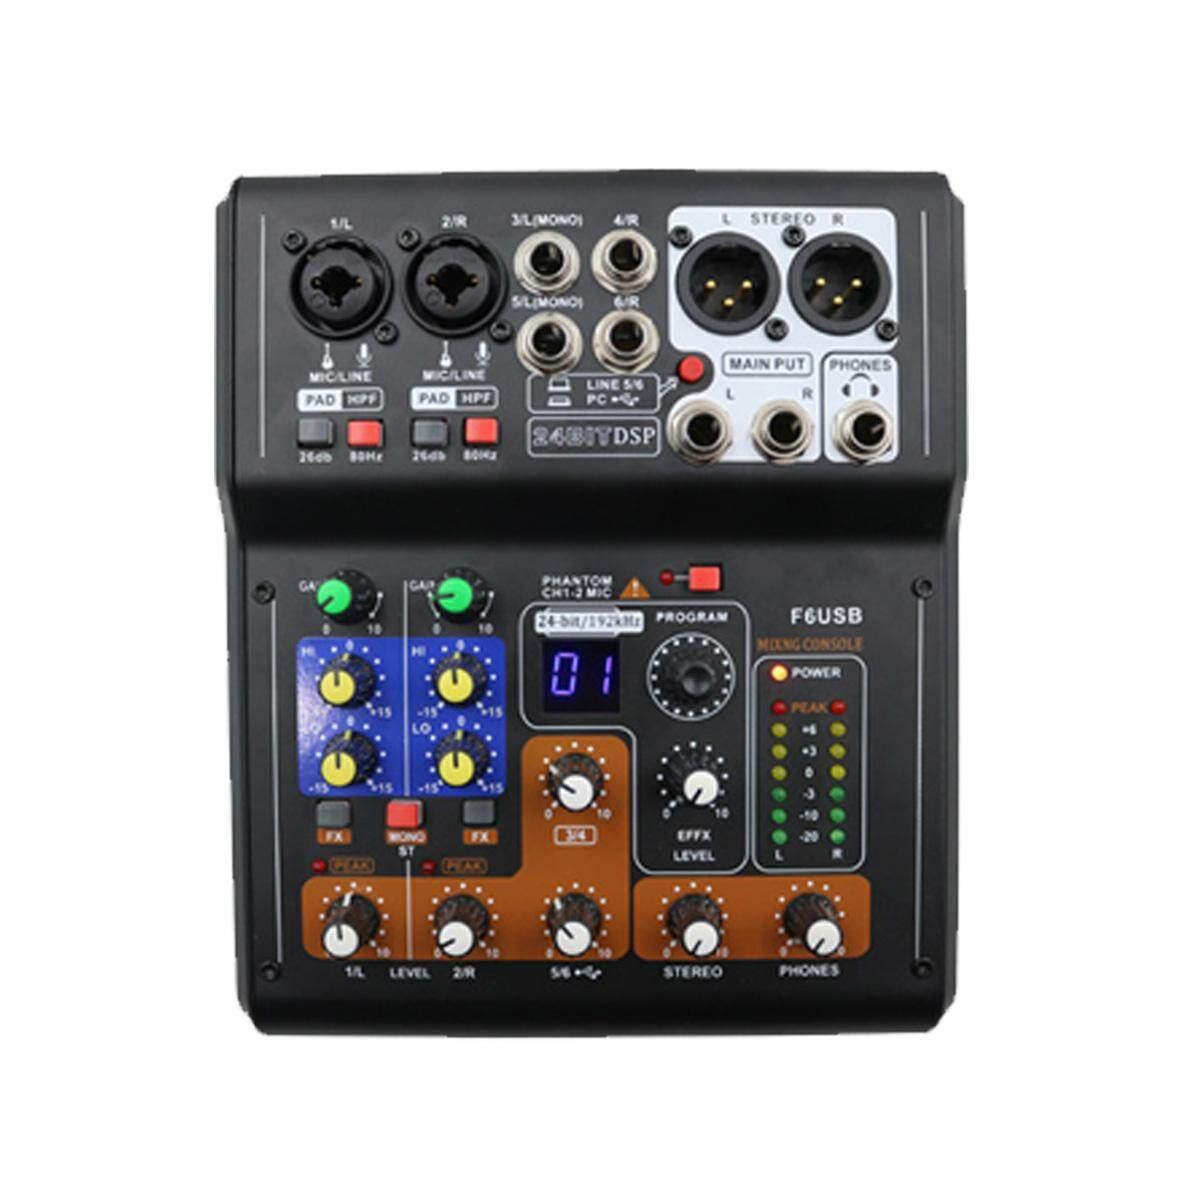 Buy Reliable Functional Audio Interface 5 Channel Portable Mixer Mini Professional 6 Live Studio Mixing Phantom Console Usb Intl